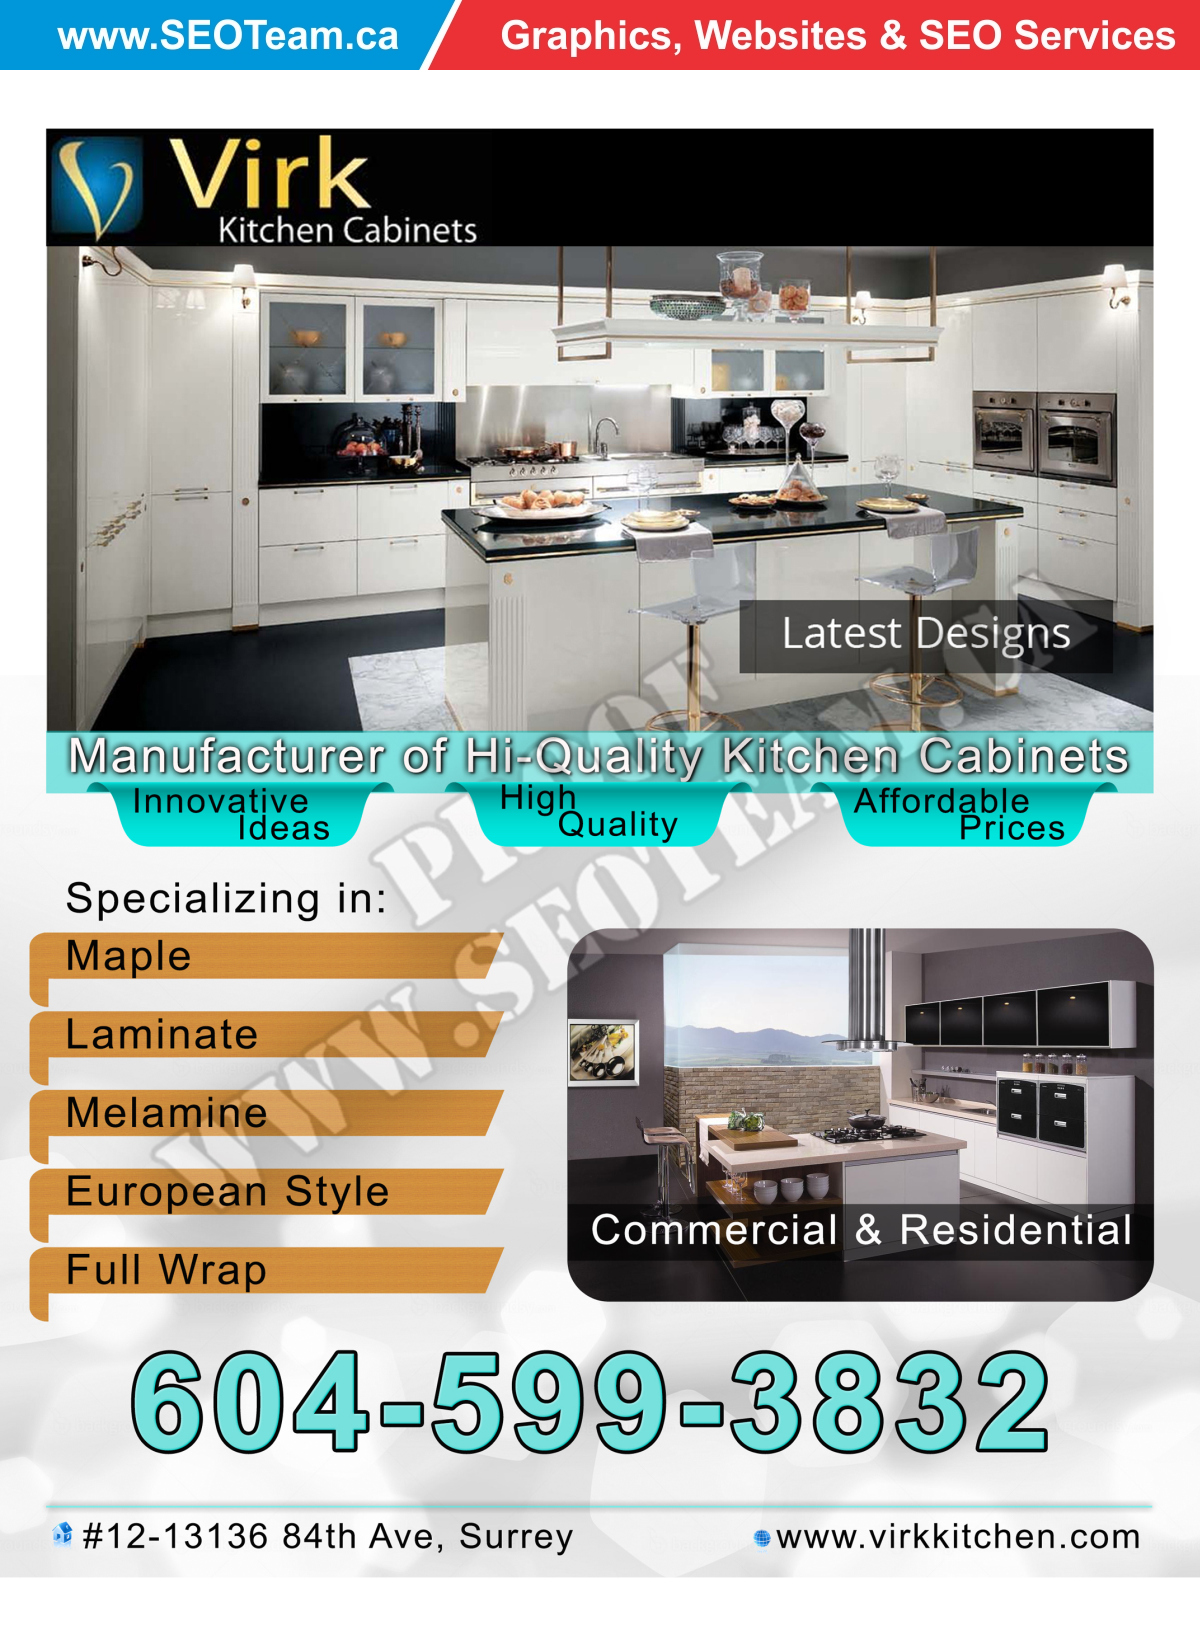 Virk Kitchen - Design By SEOTeam.ca